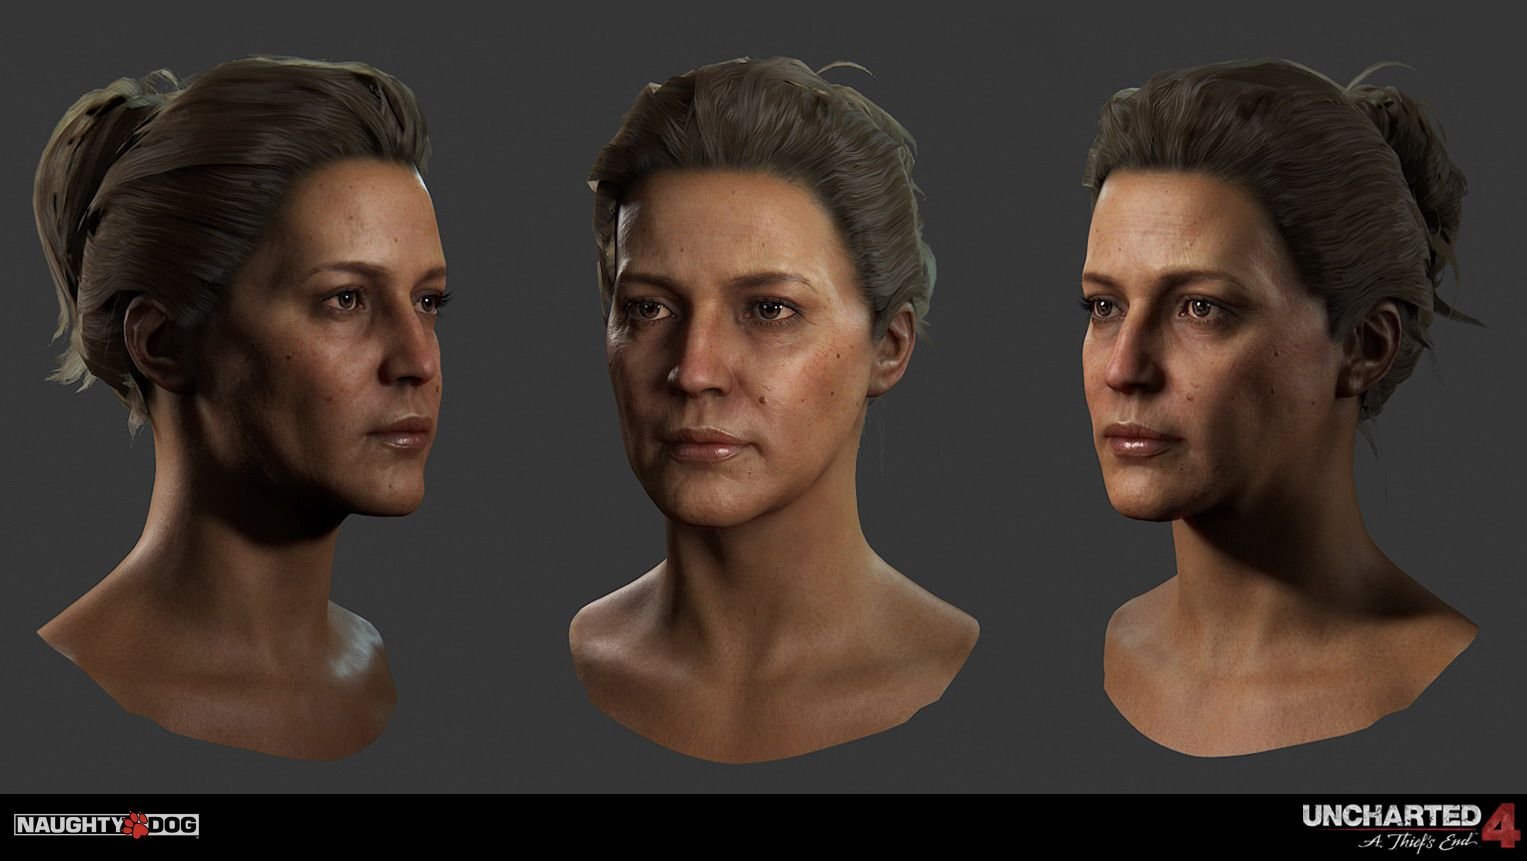 Uncharted 4 - A Thief's End Characters Art dump - Page 3